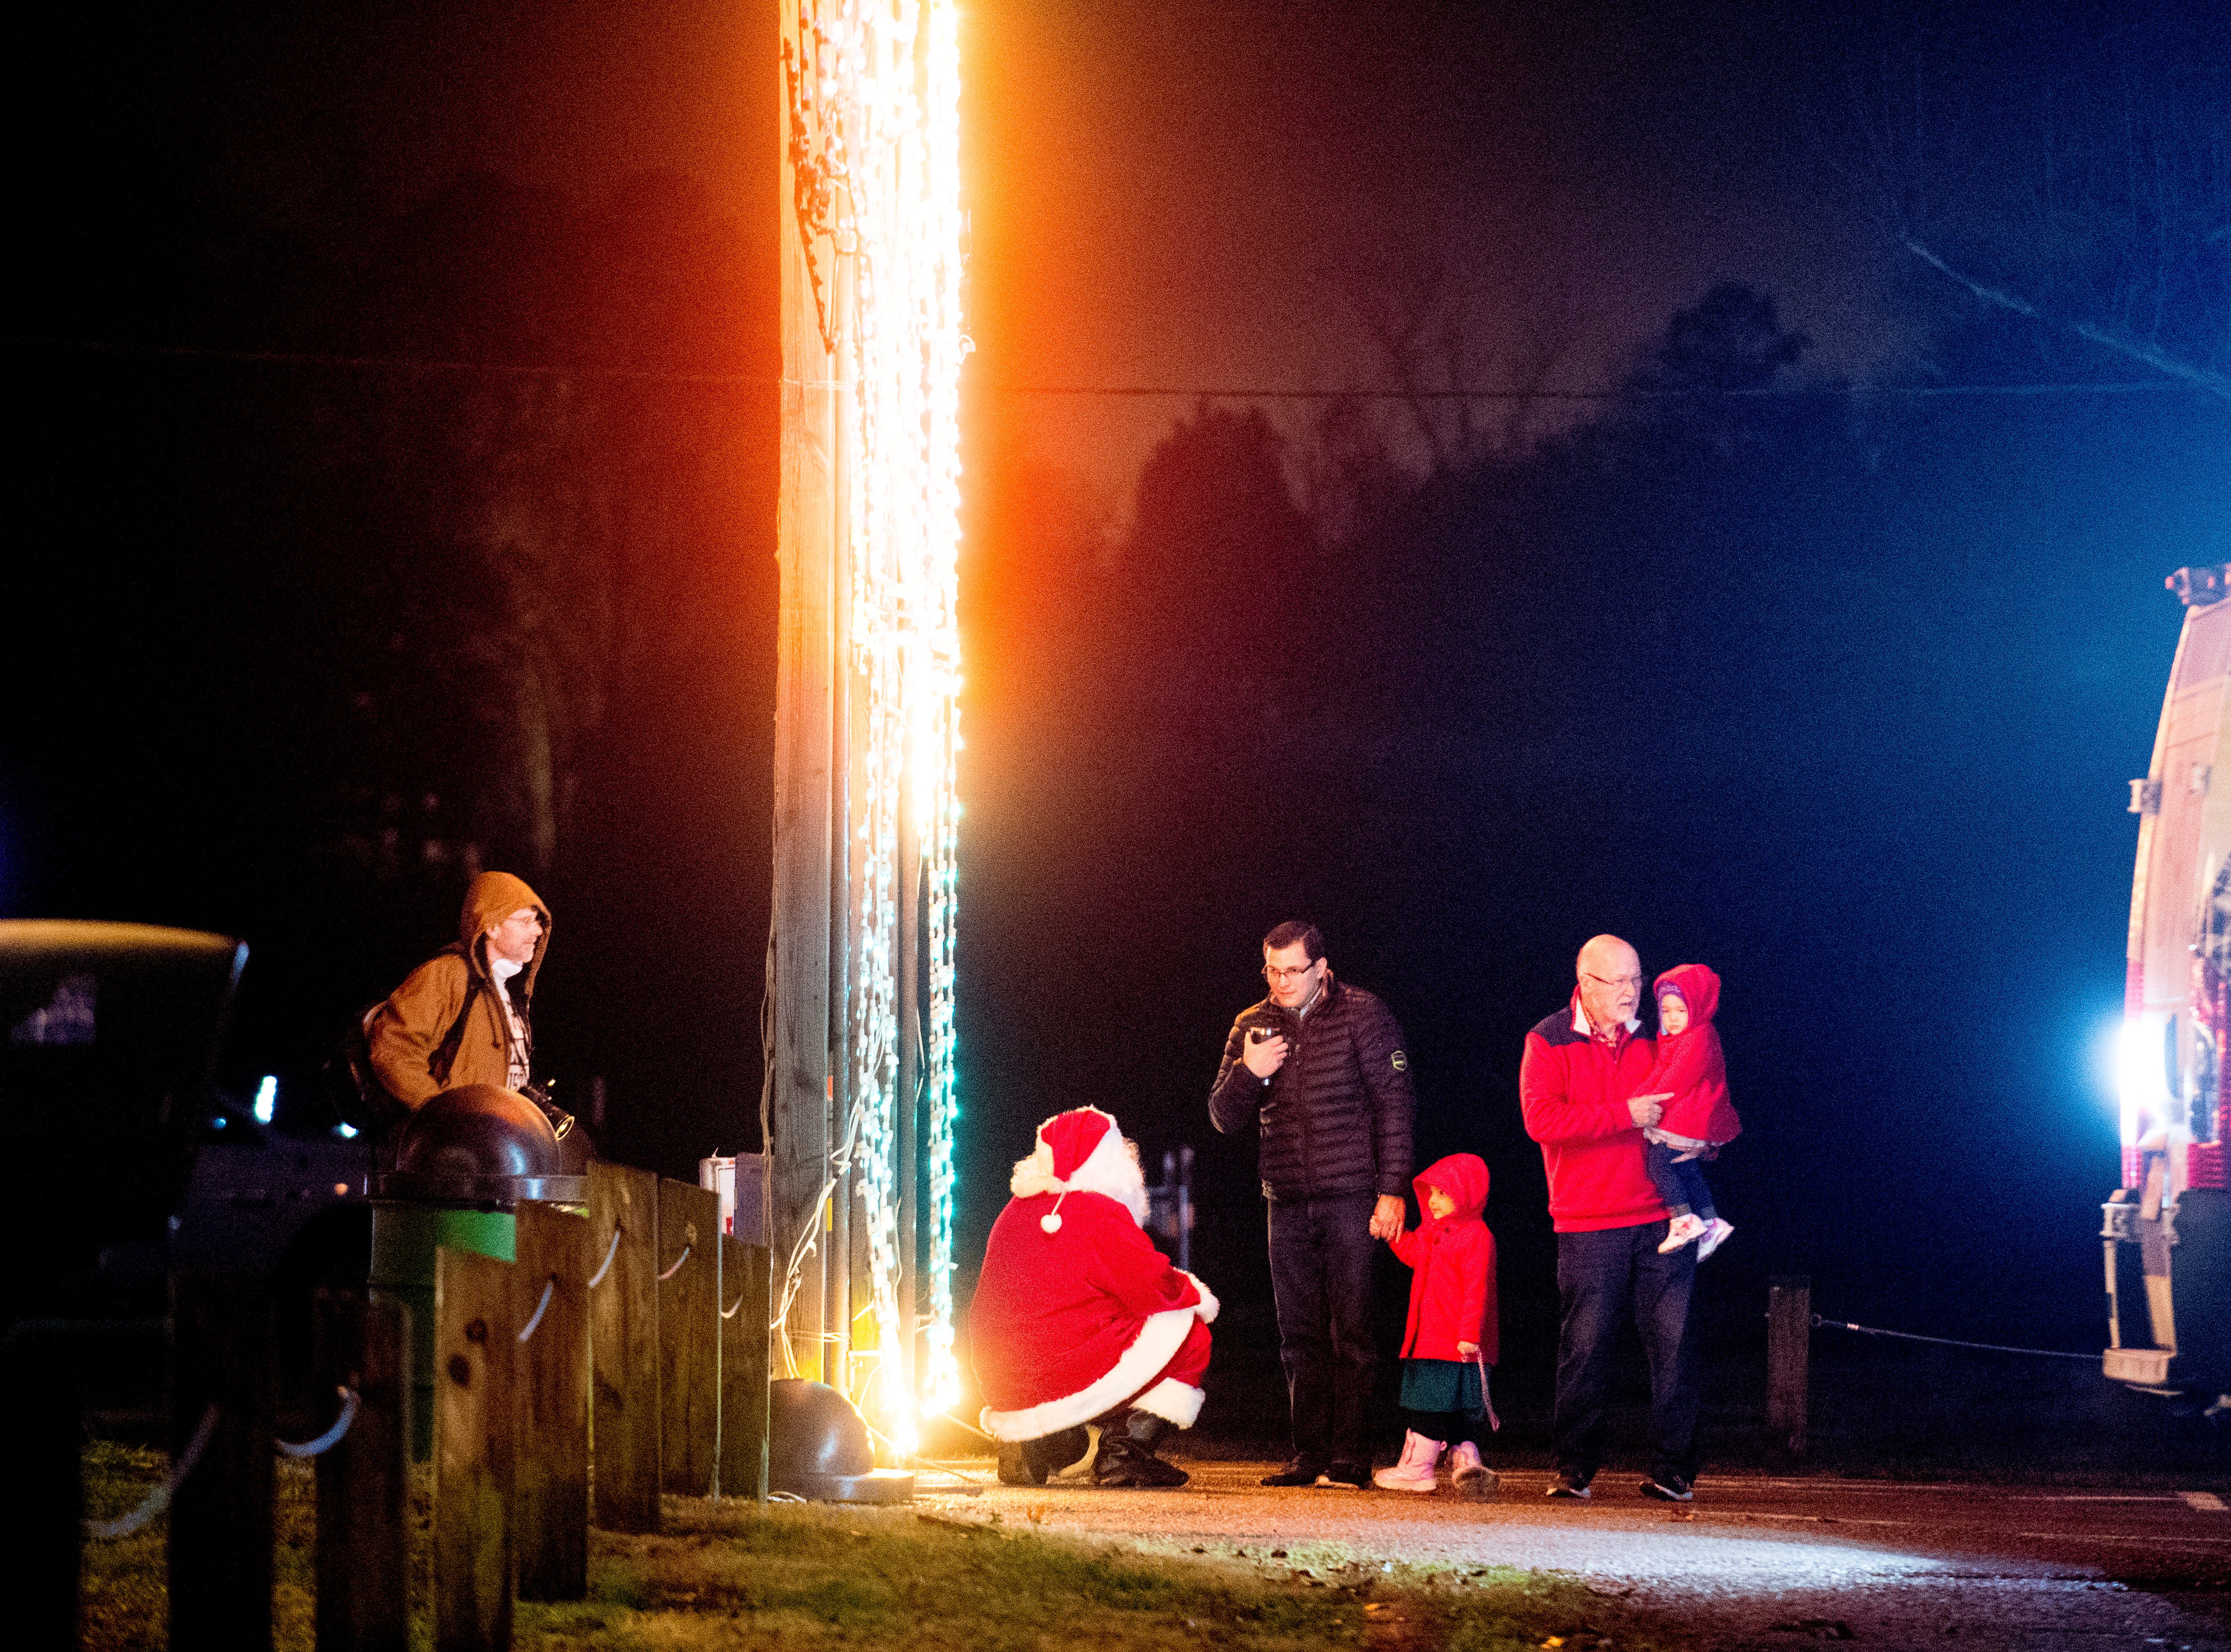 Santa Claus greets visitors at Knox CountyÕs 20th annual Holiday Festival of Lights kick off at The Cove at Concord Park in Farragut, Tennessee on Friday, December 21, 2018. The family-friendly event is free and will run through Dec. 29 from 6 to 9 p.m., excluding Christmas Eve and Christmas Day.